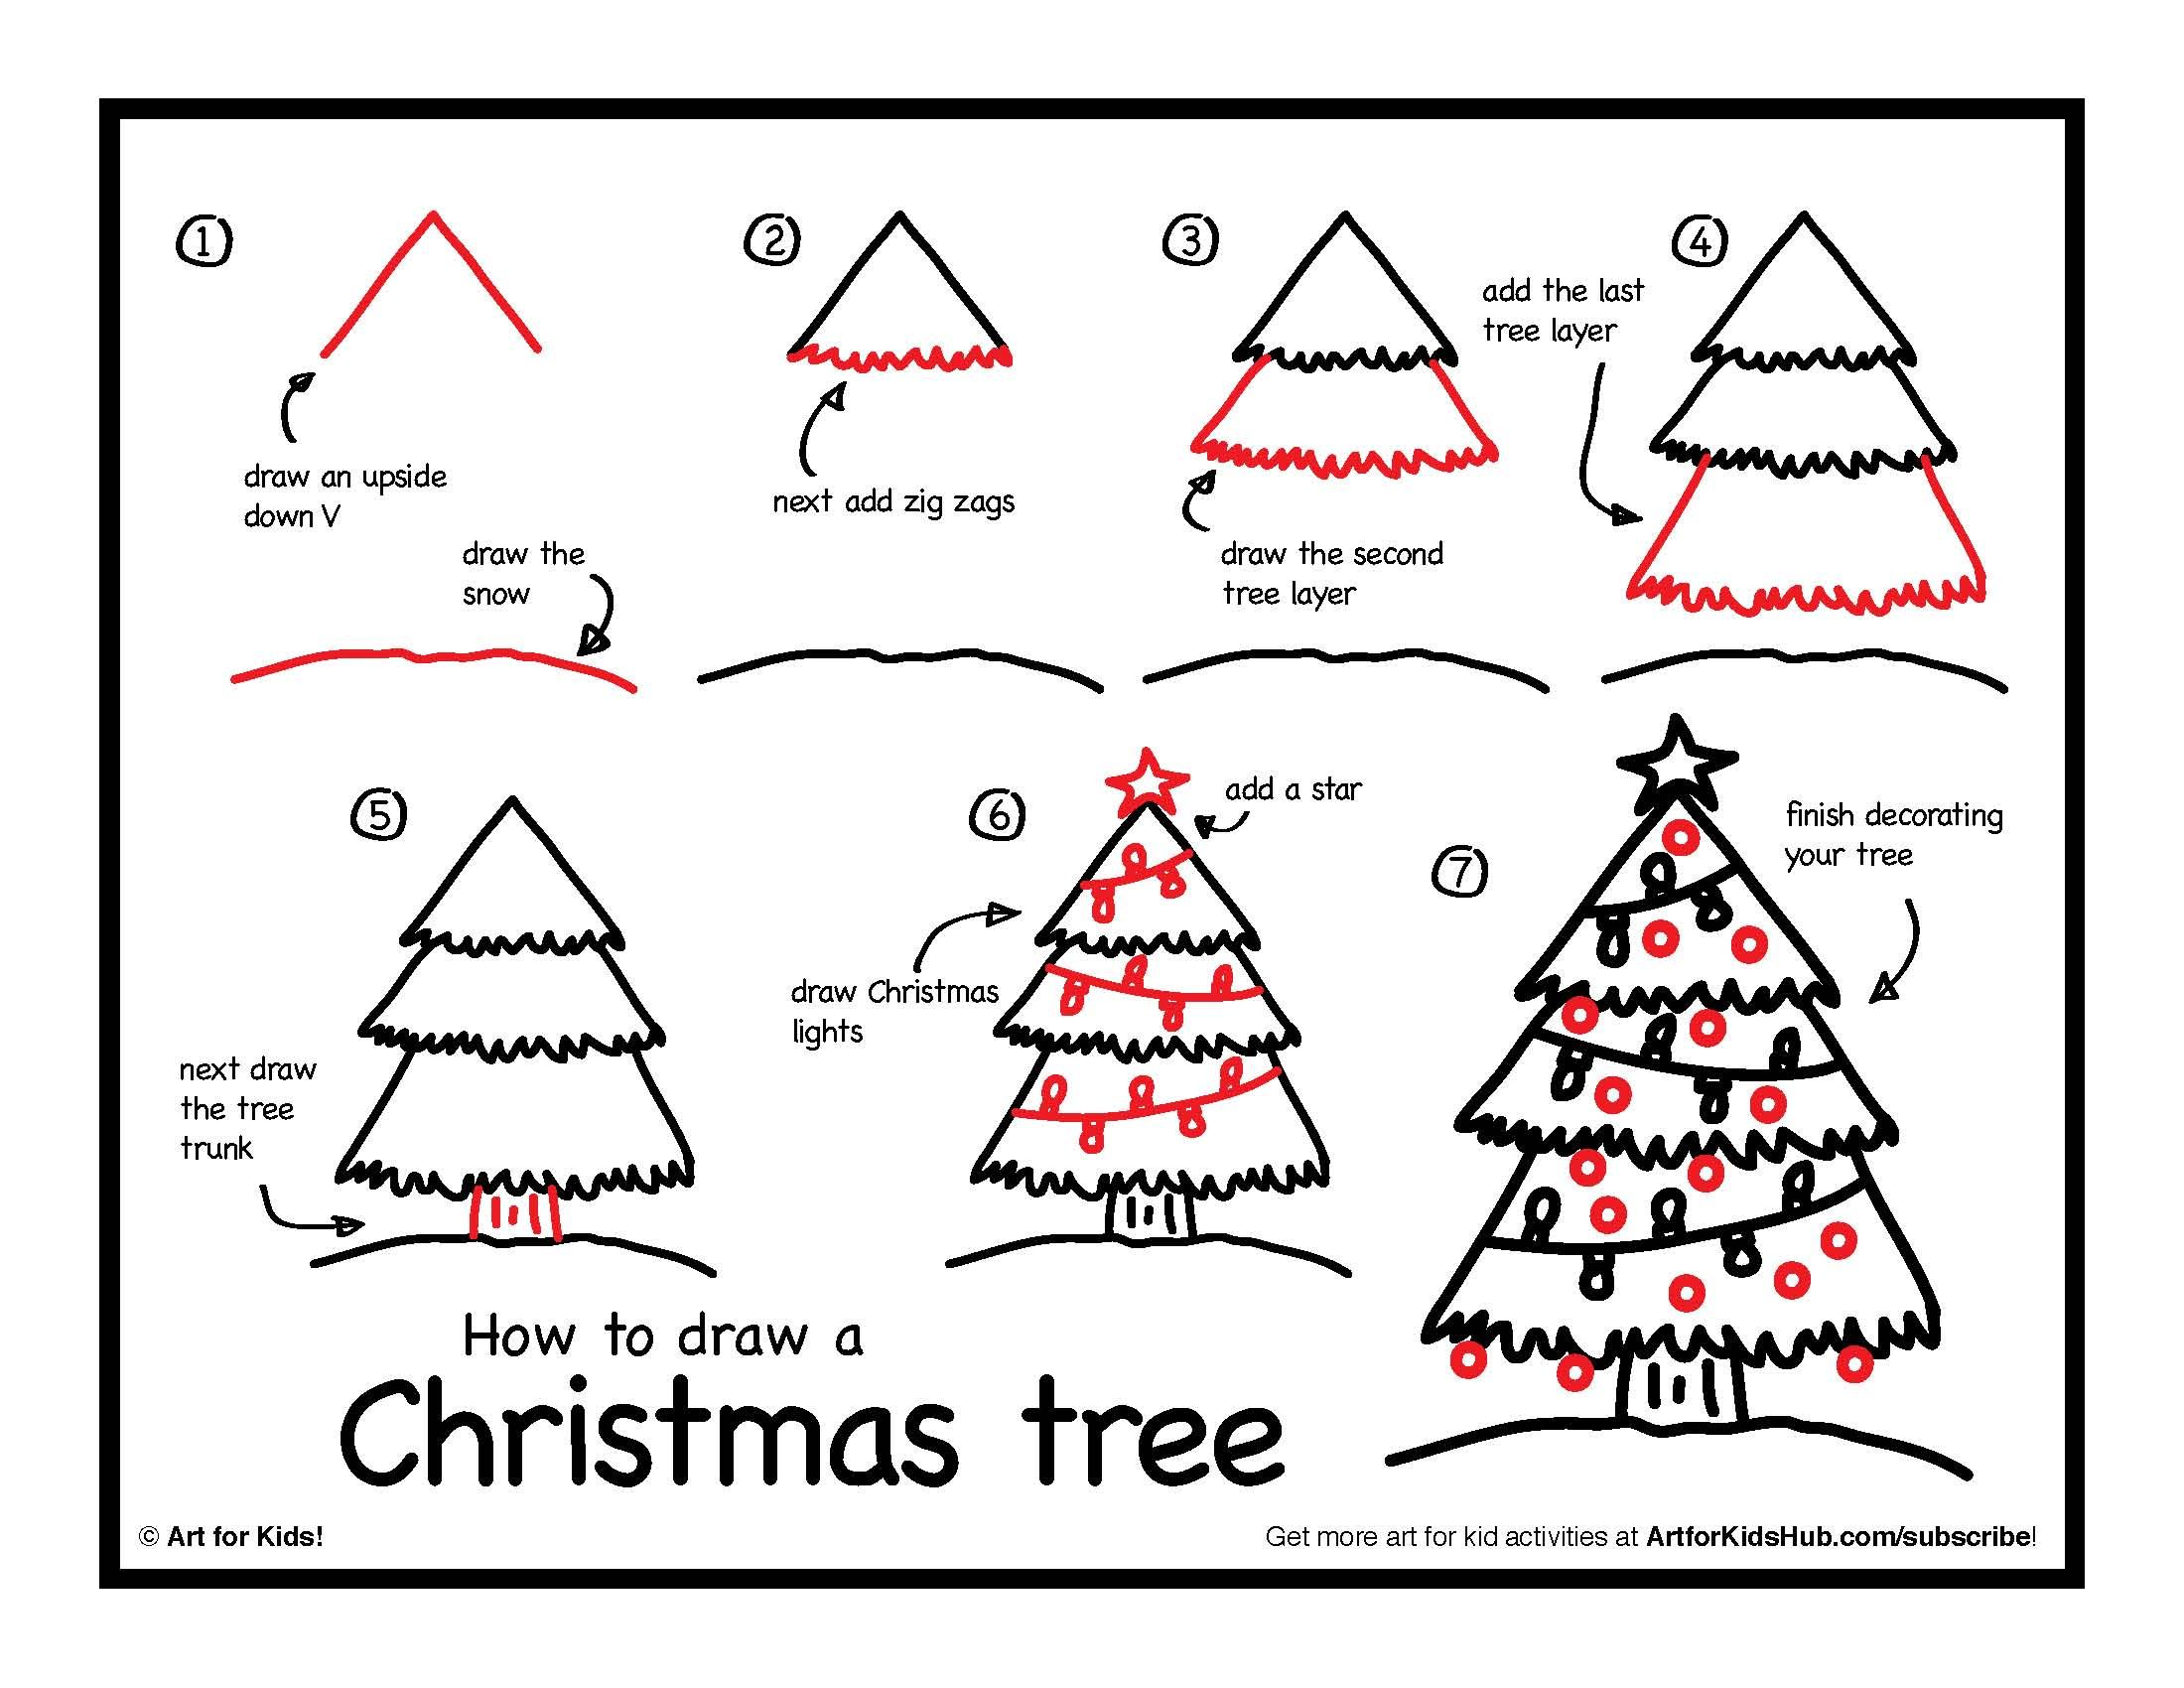 How To Draw A Christmas Tree Art For Kids Hub Art For Kids